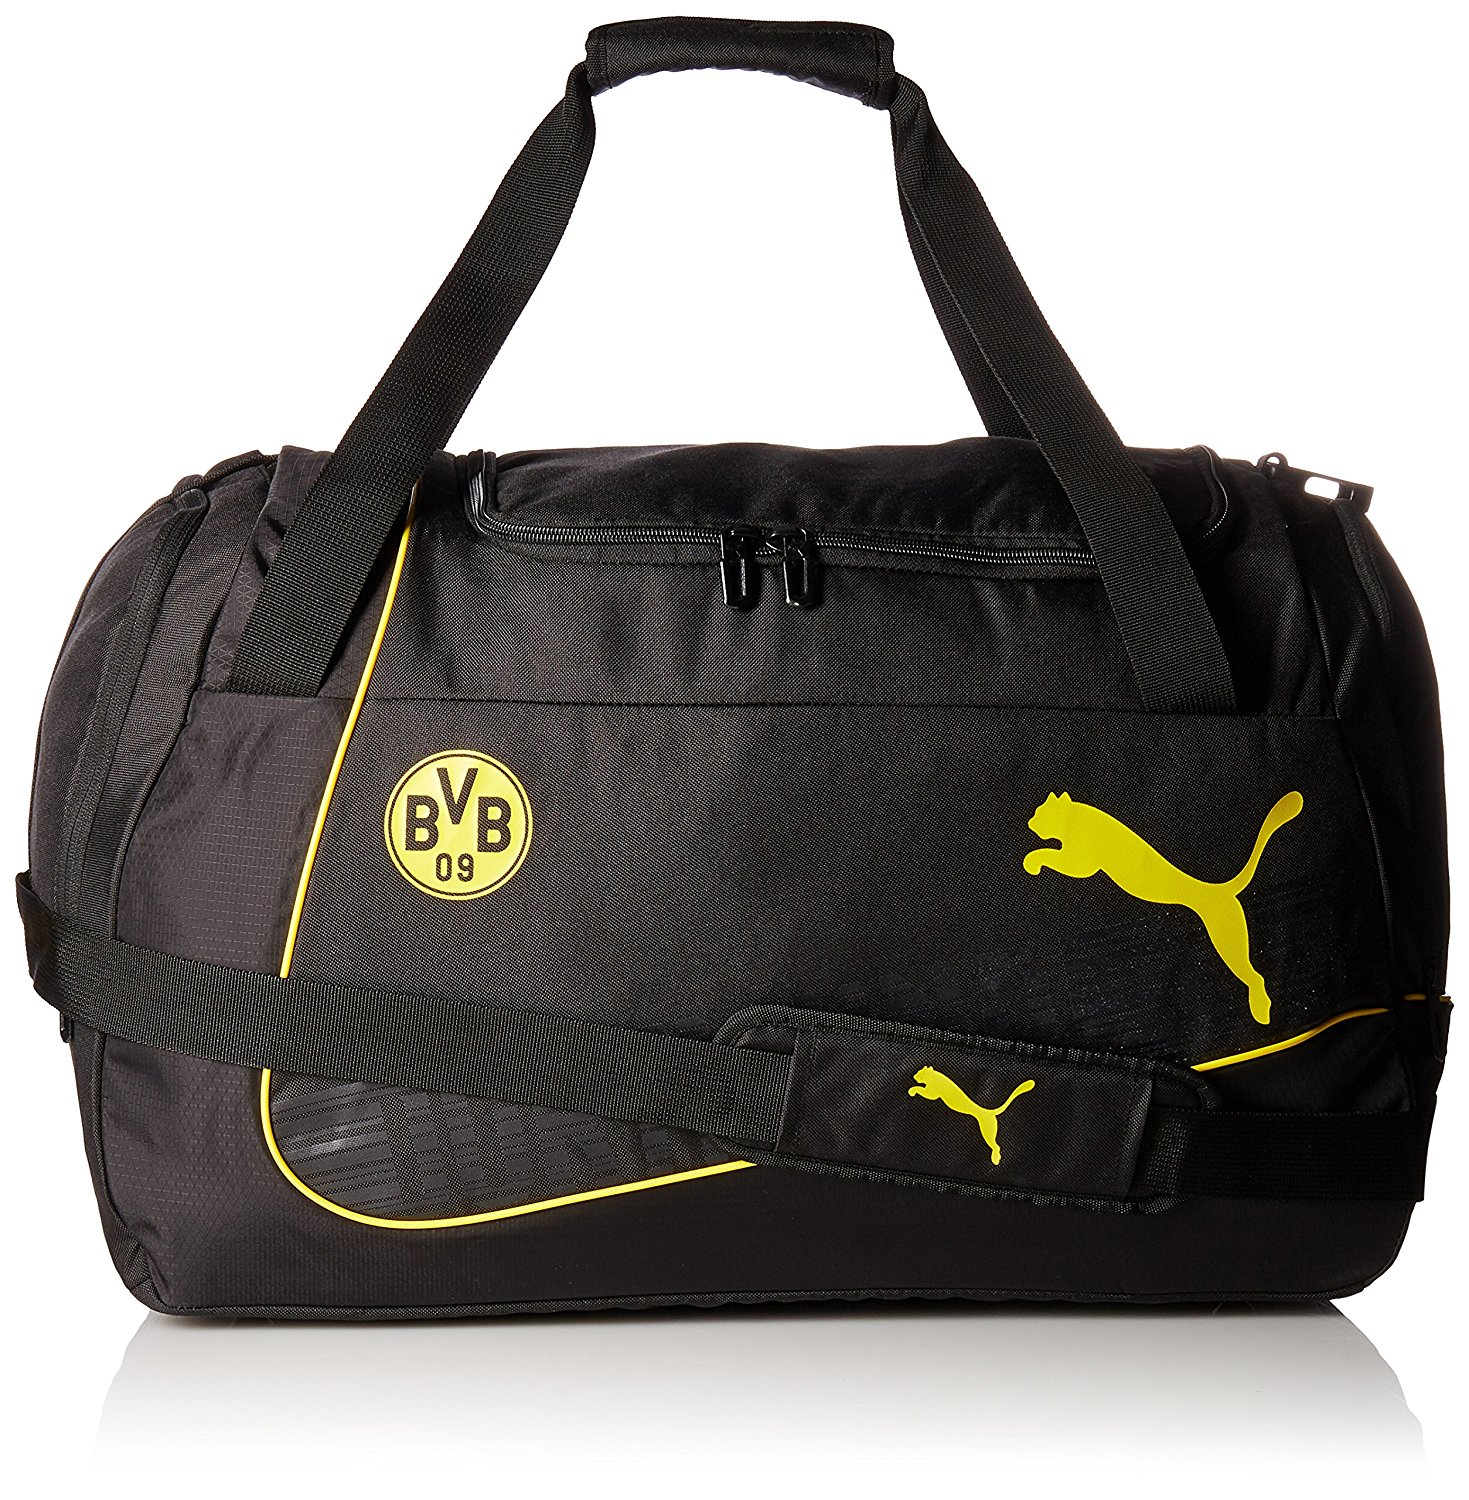 97852003f863 Get Quotations · Puma Sports Bag Medium Bag Borussia Dortmund BVB Bag 2016  073914 01